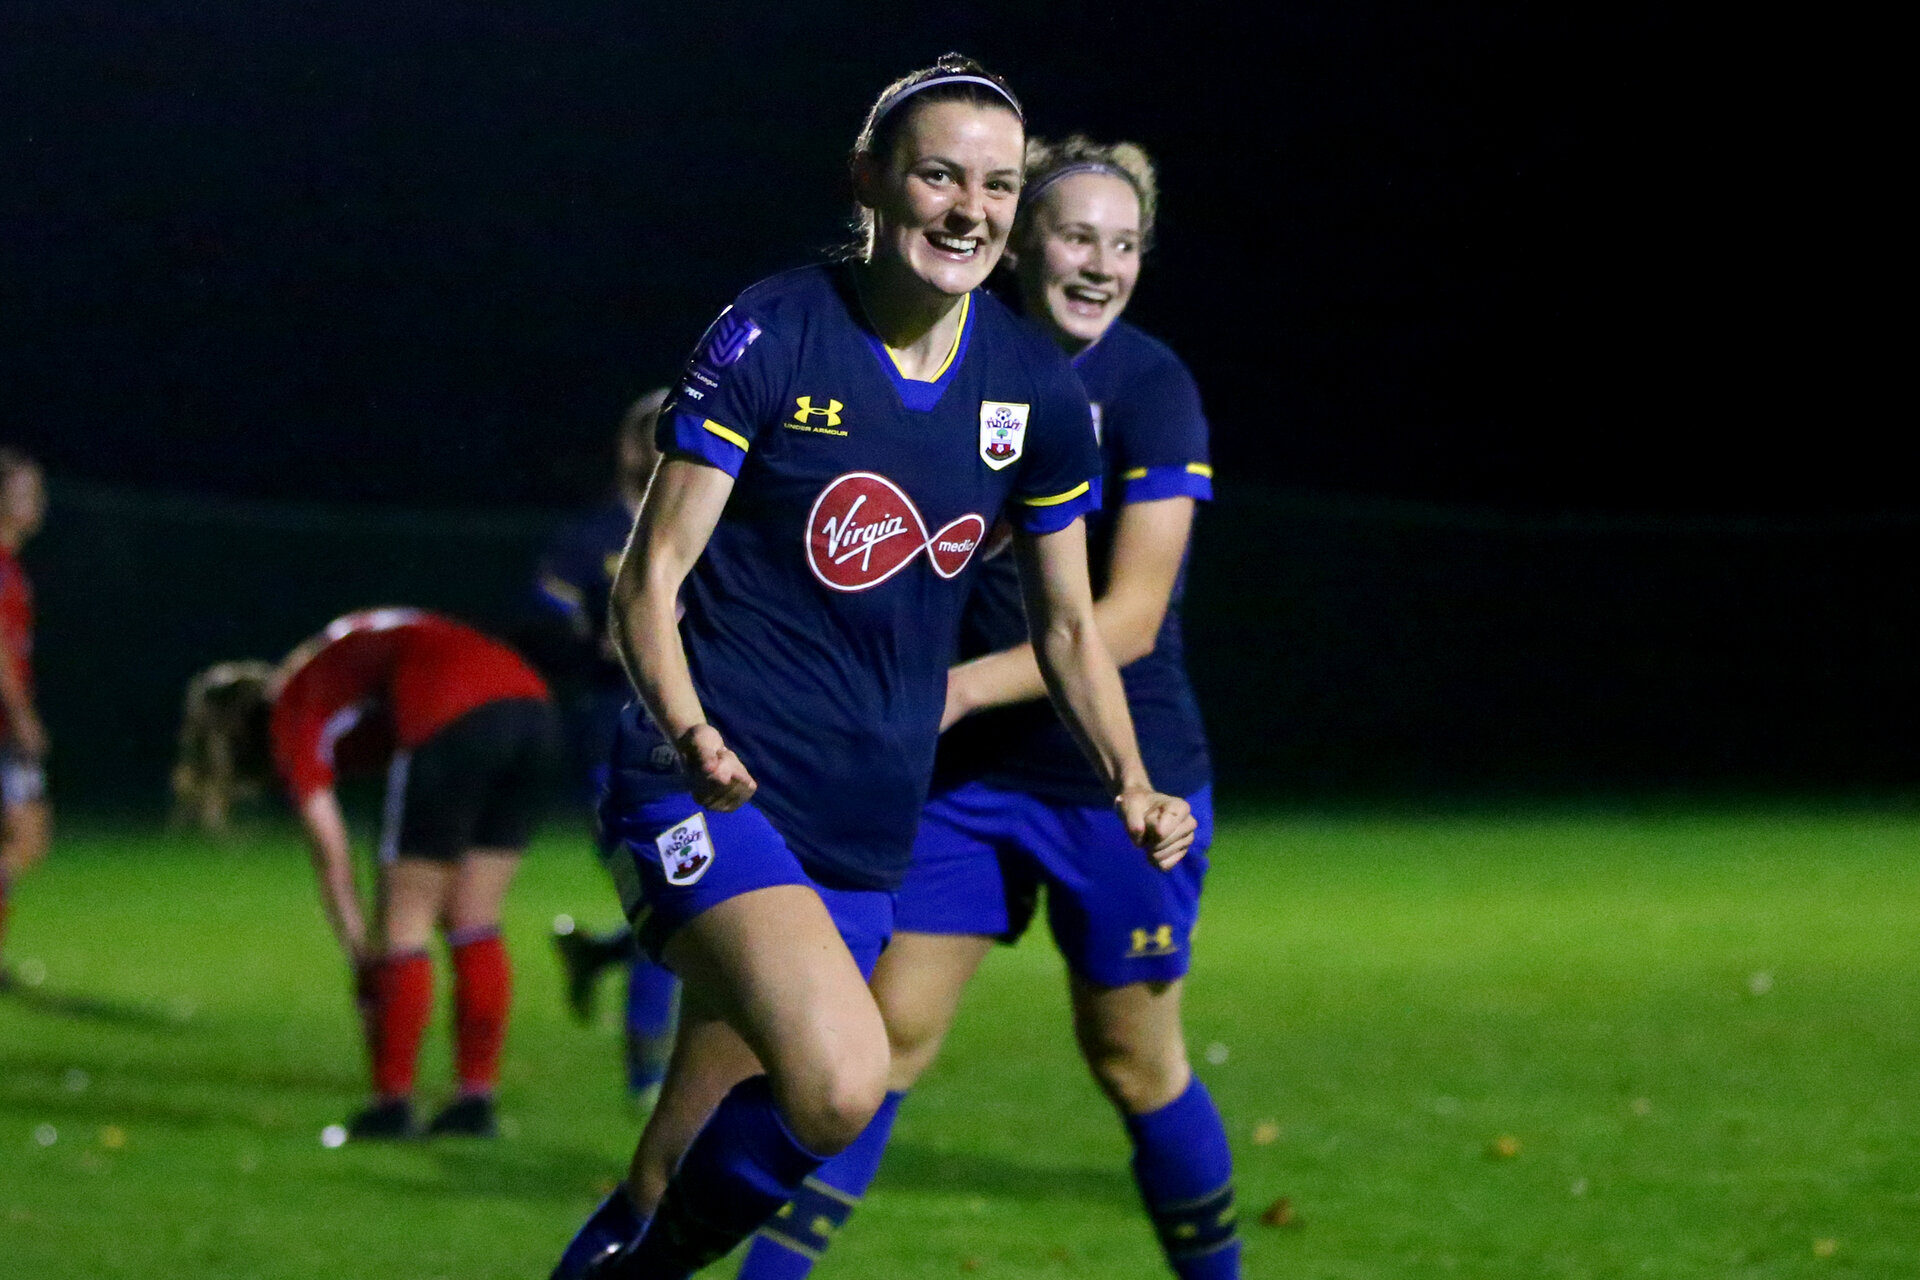 Southampton, ENGLAND - SEPTEMBER 30: during the FAWNL match between Southampton Womens and Southampton FC Women at Alresford Town on September 30, 2020 in Southampton, United Kingdom (Photo by Isabelle Field/Southampton FC via Getty Images)